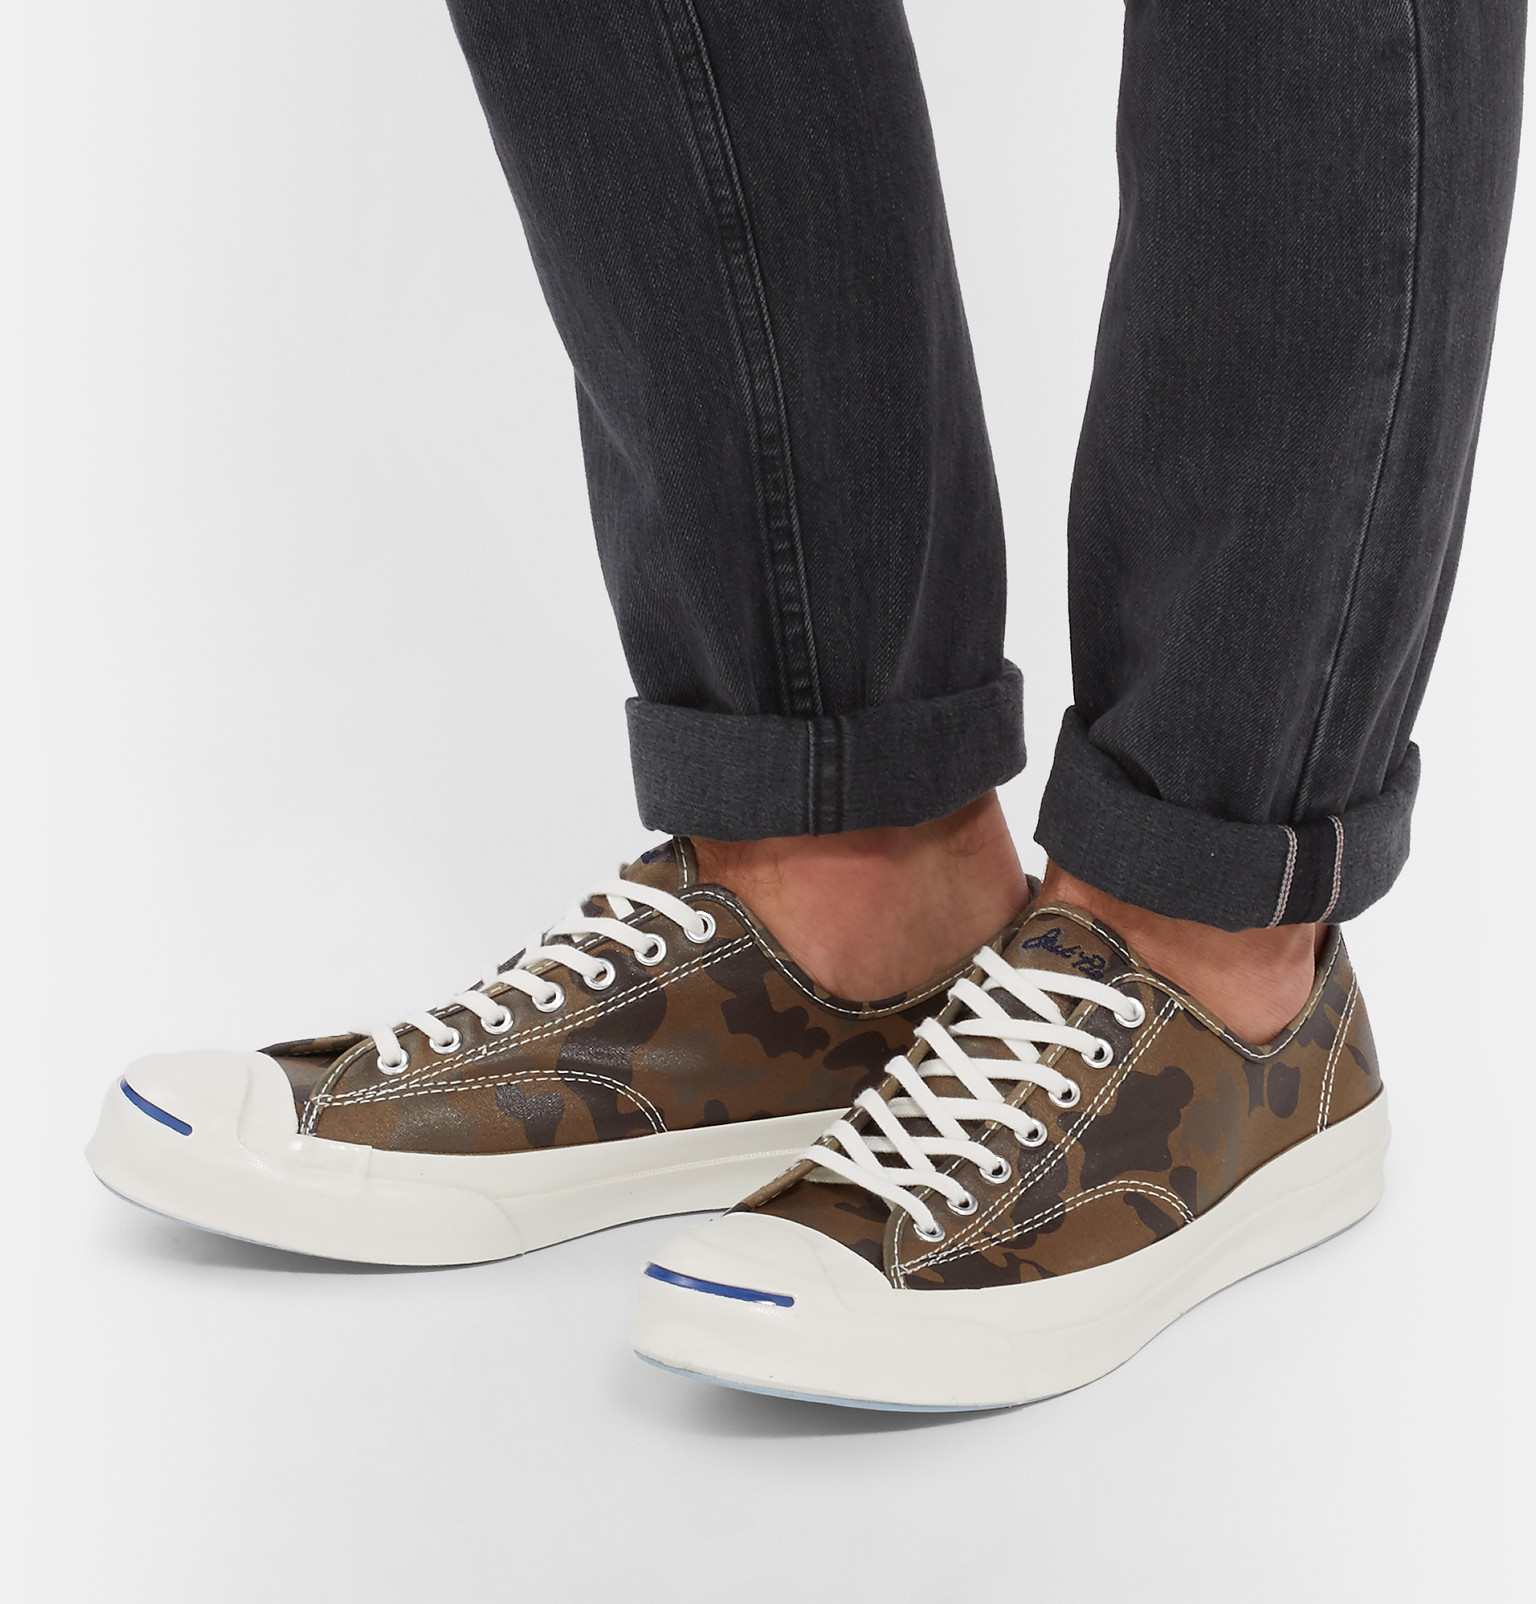 Converse Jack Purcell Signature Camouflage-print Sneakers in Brown for Men  - Lyst 7eaa4816b